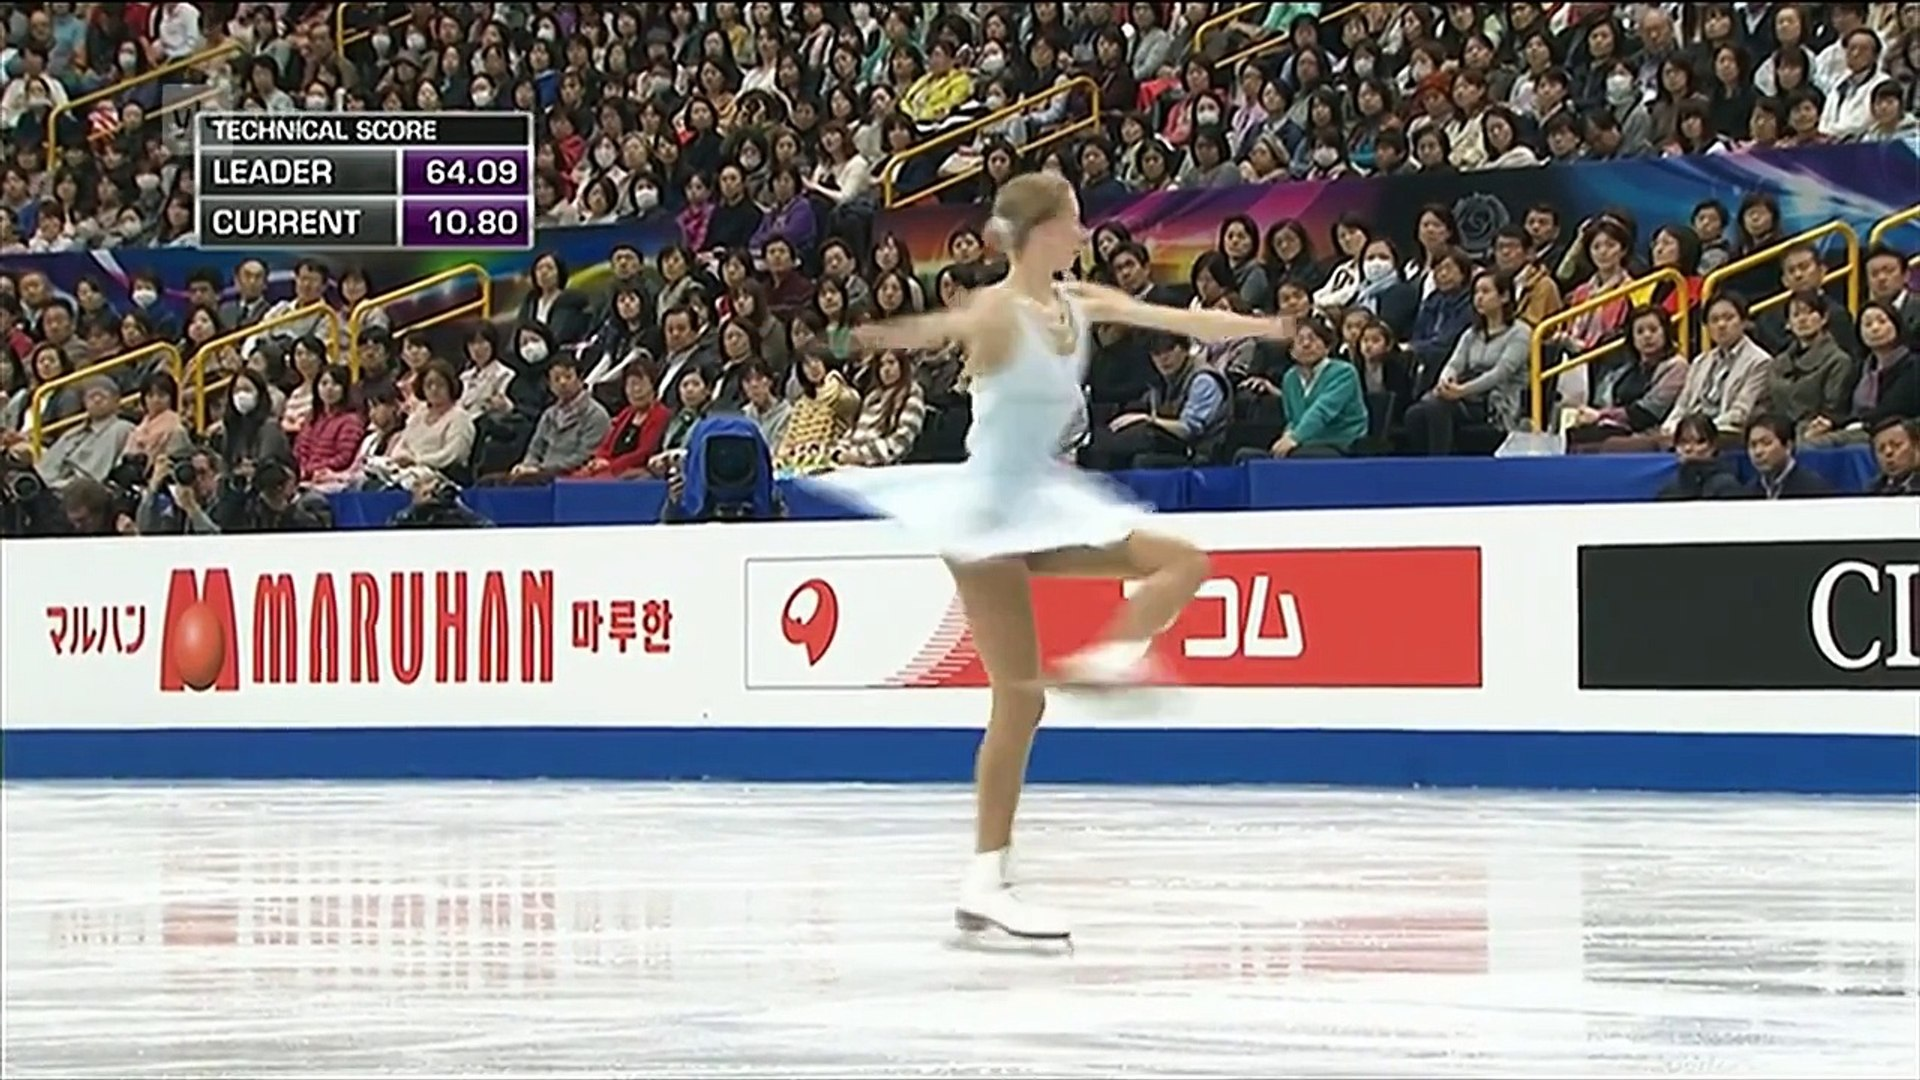 Polina Edmunds - 2014 World Figure Skating Championships - Free Skating